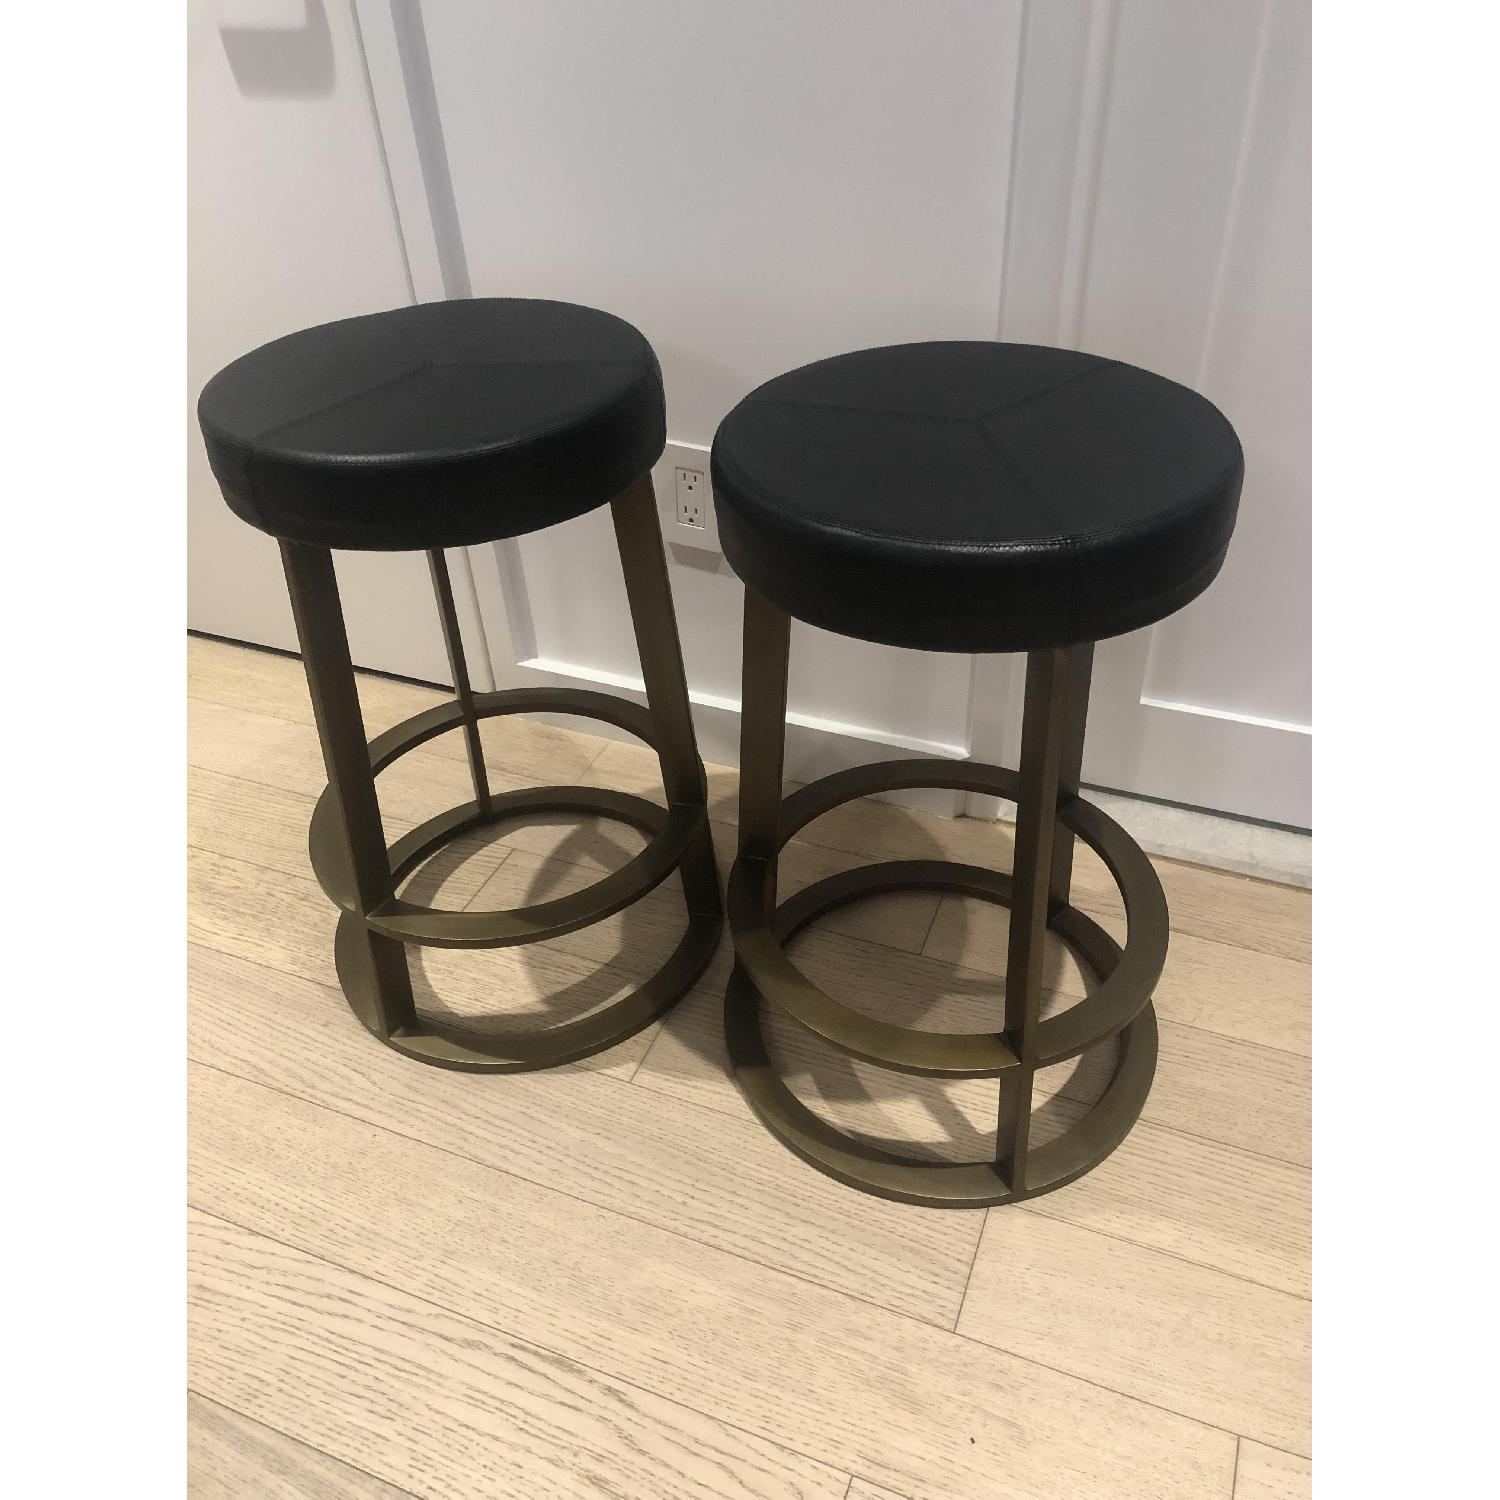 CB2 Leather Reverb Stools - image-6